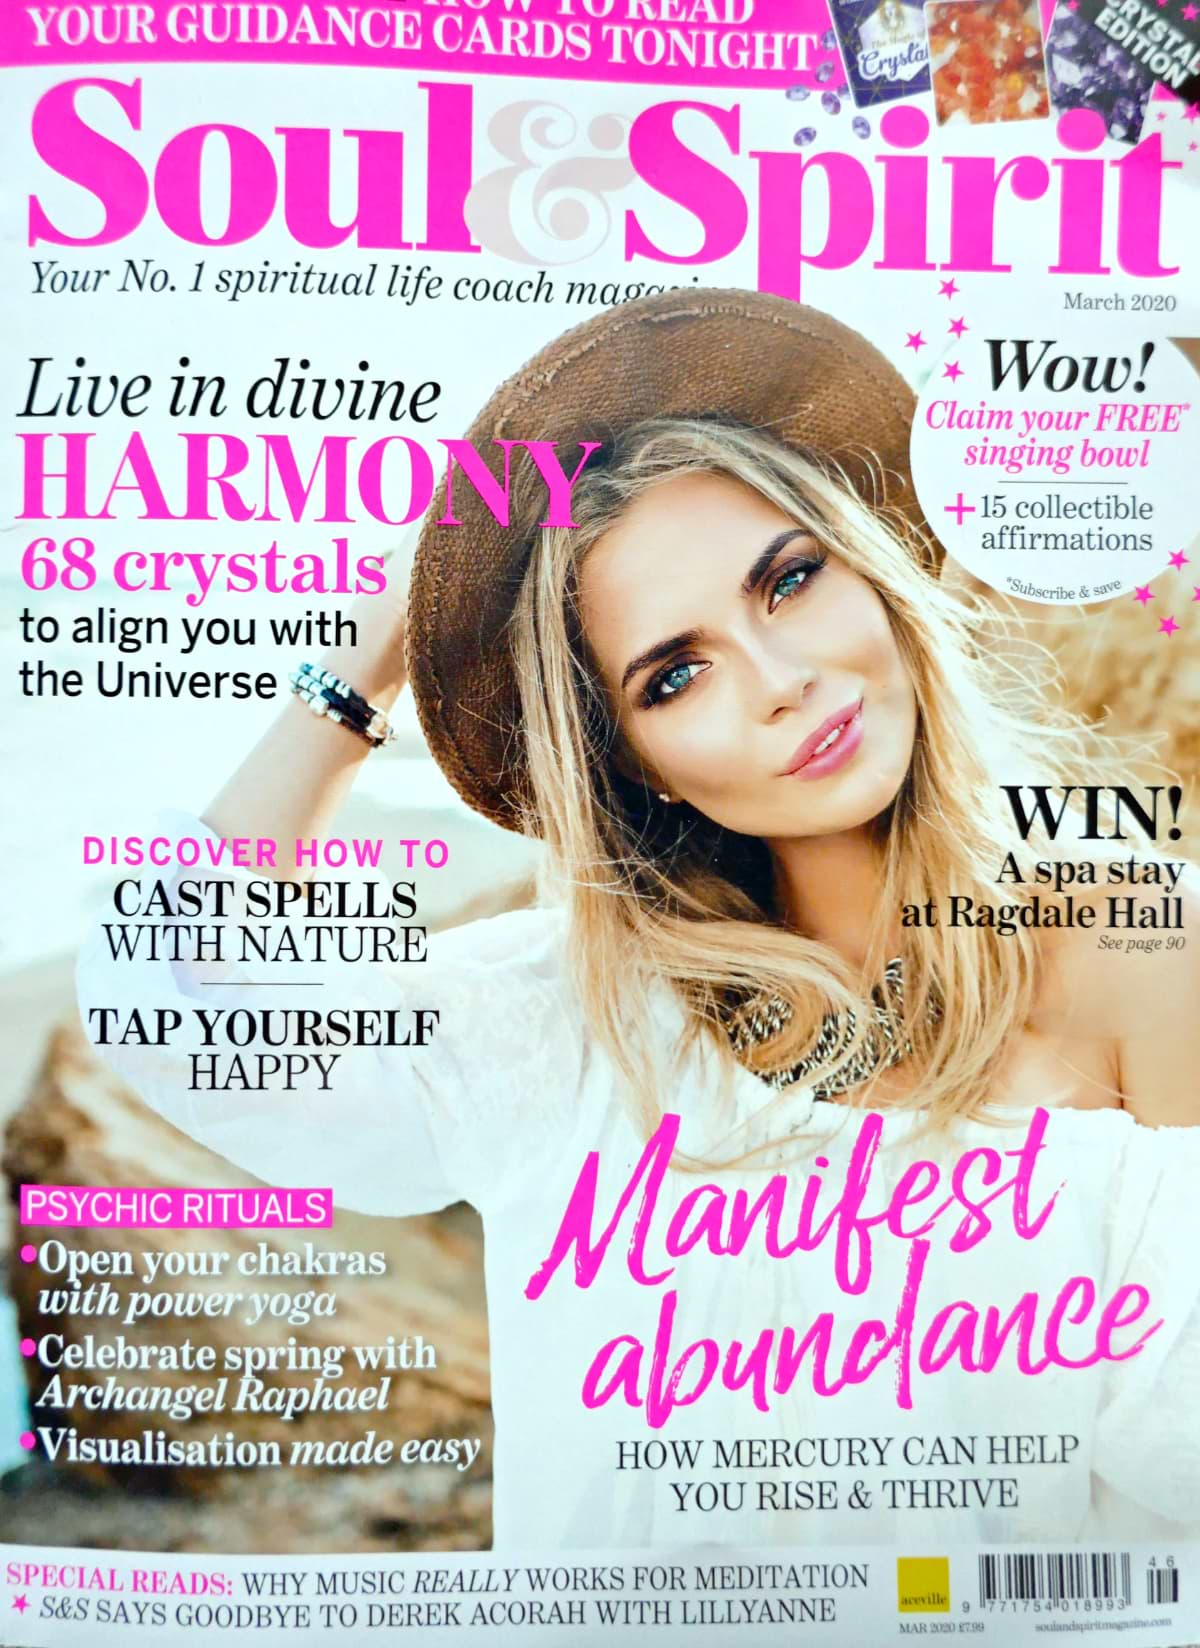 Soul & Spirit Magazine March 2020 Neshla Avey Cover